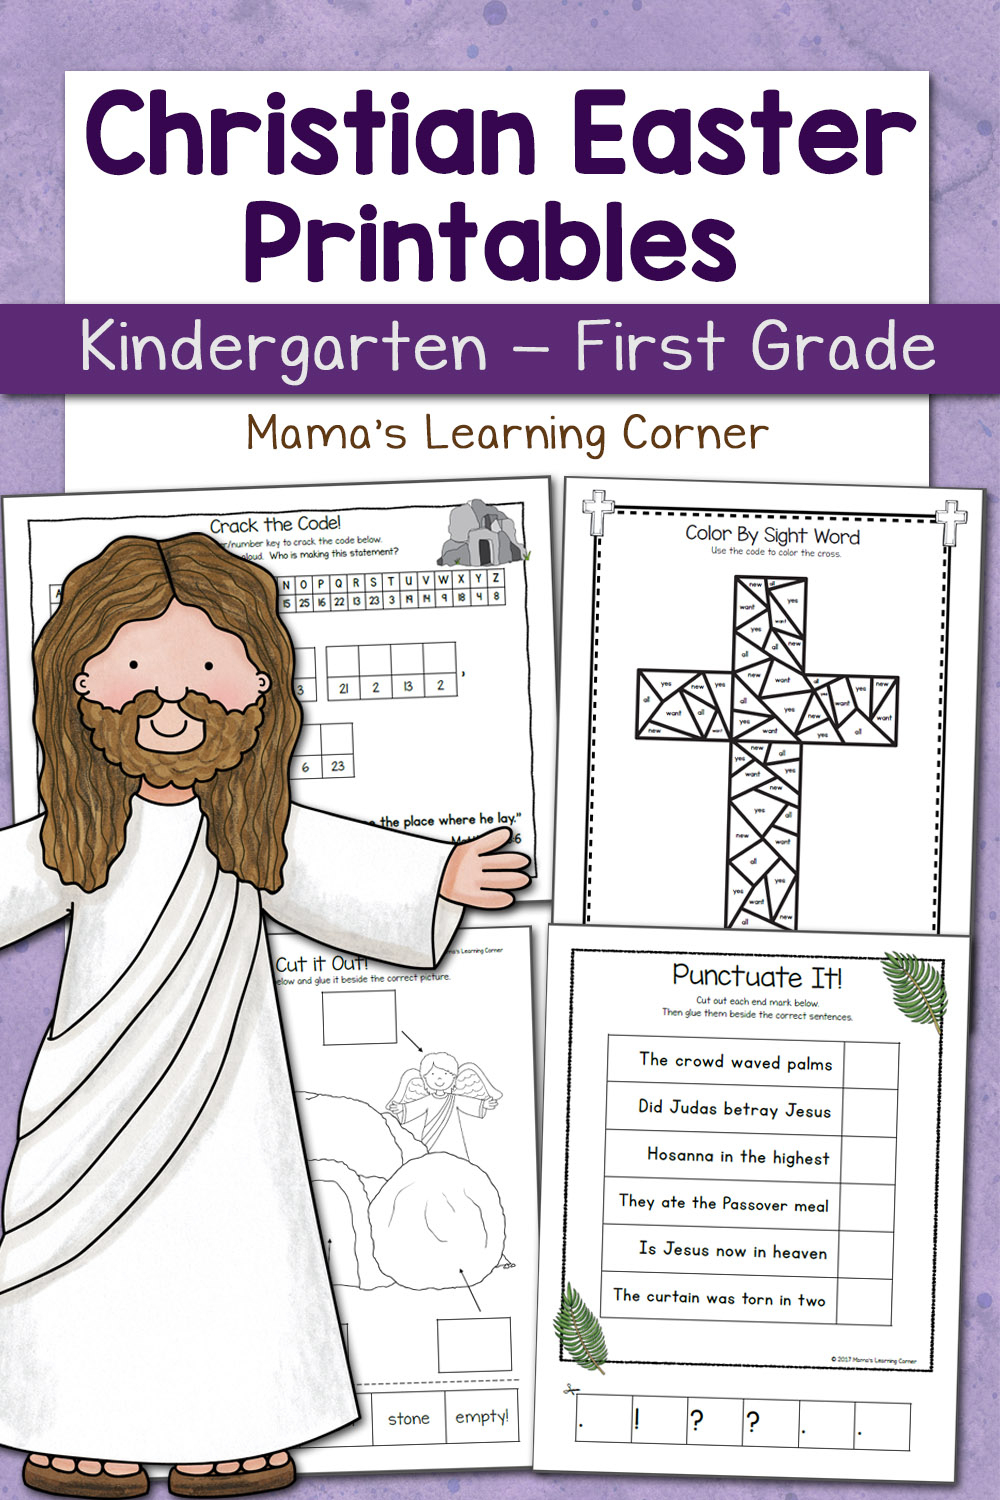 Huge List Of Easter Printables For Preschool To 2Nd Grade! - Mamas | Free Printable Easter Worksheets For 3Rd Grade